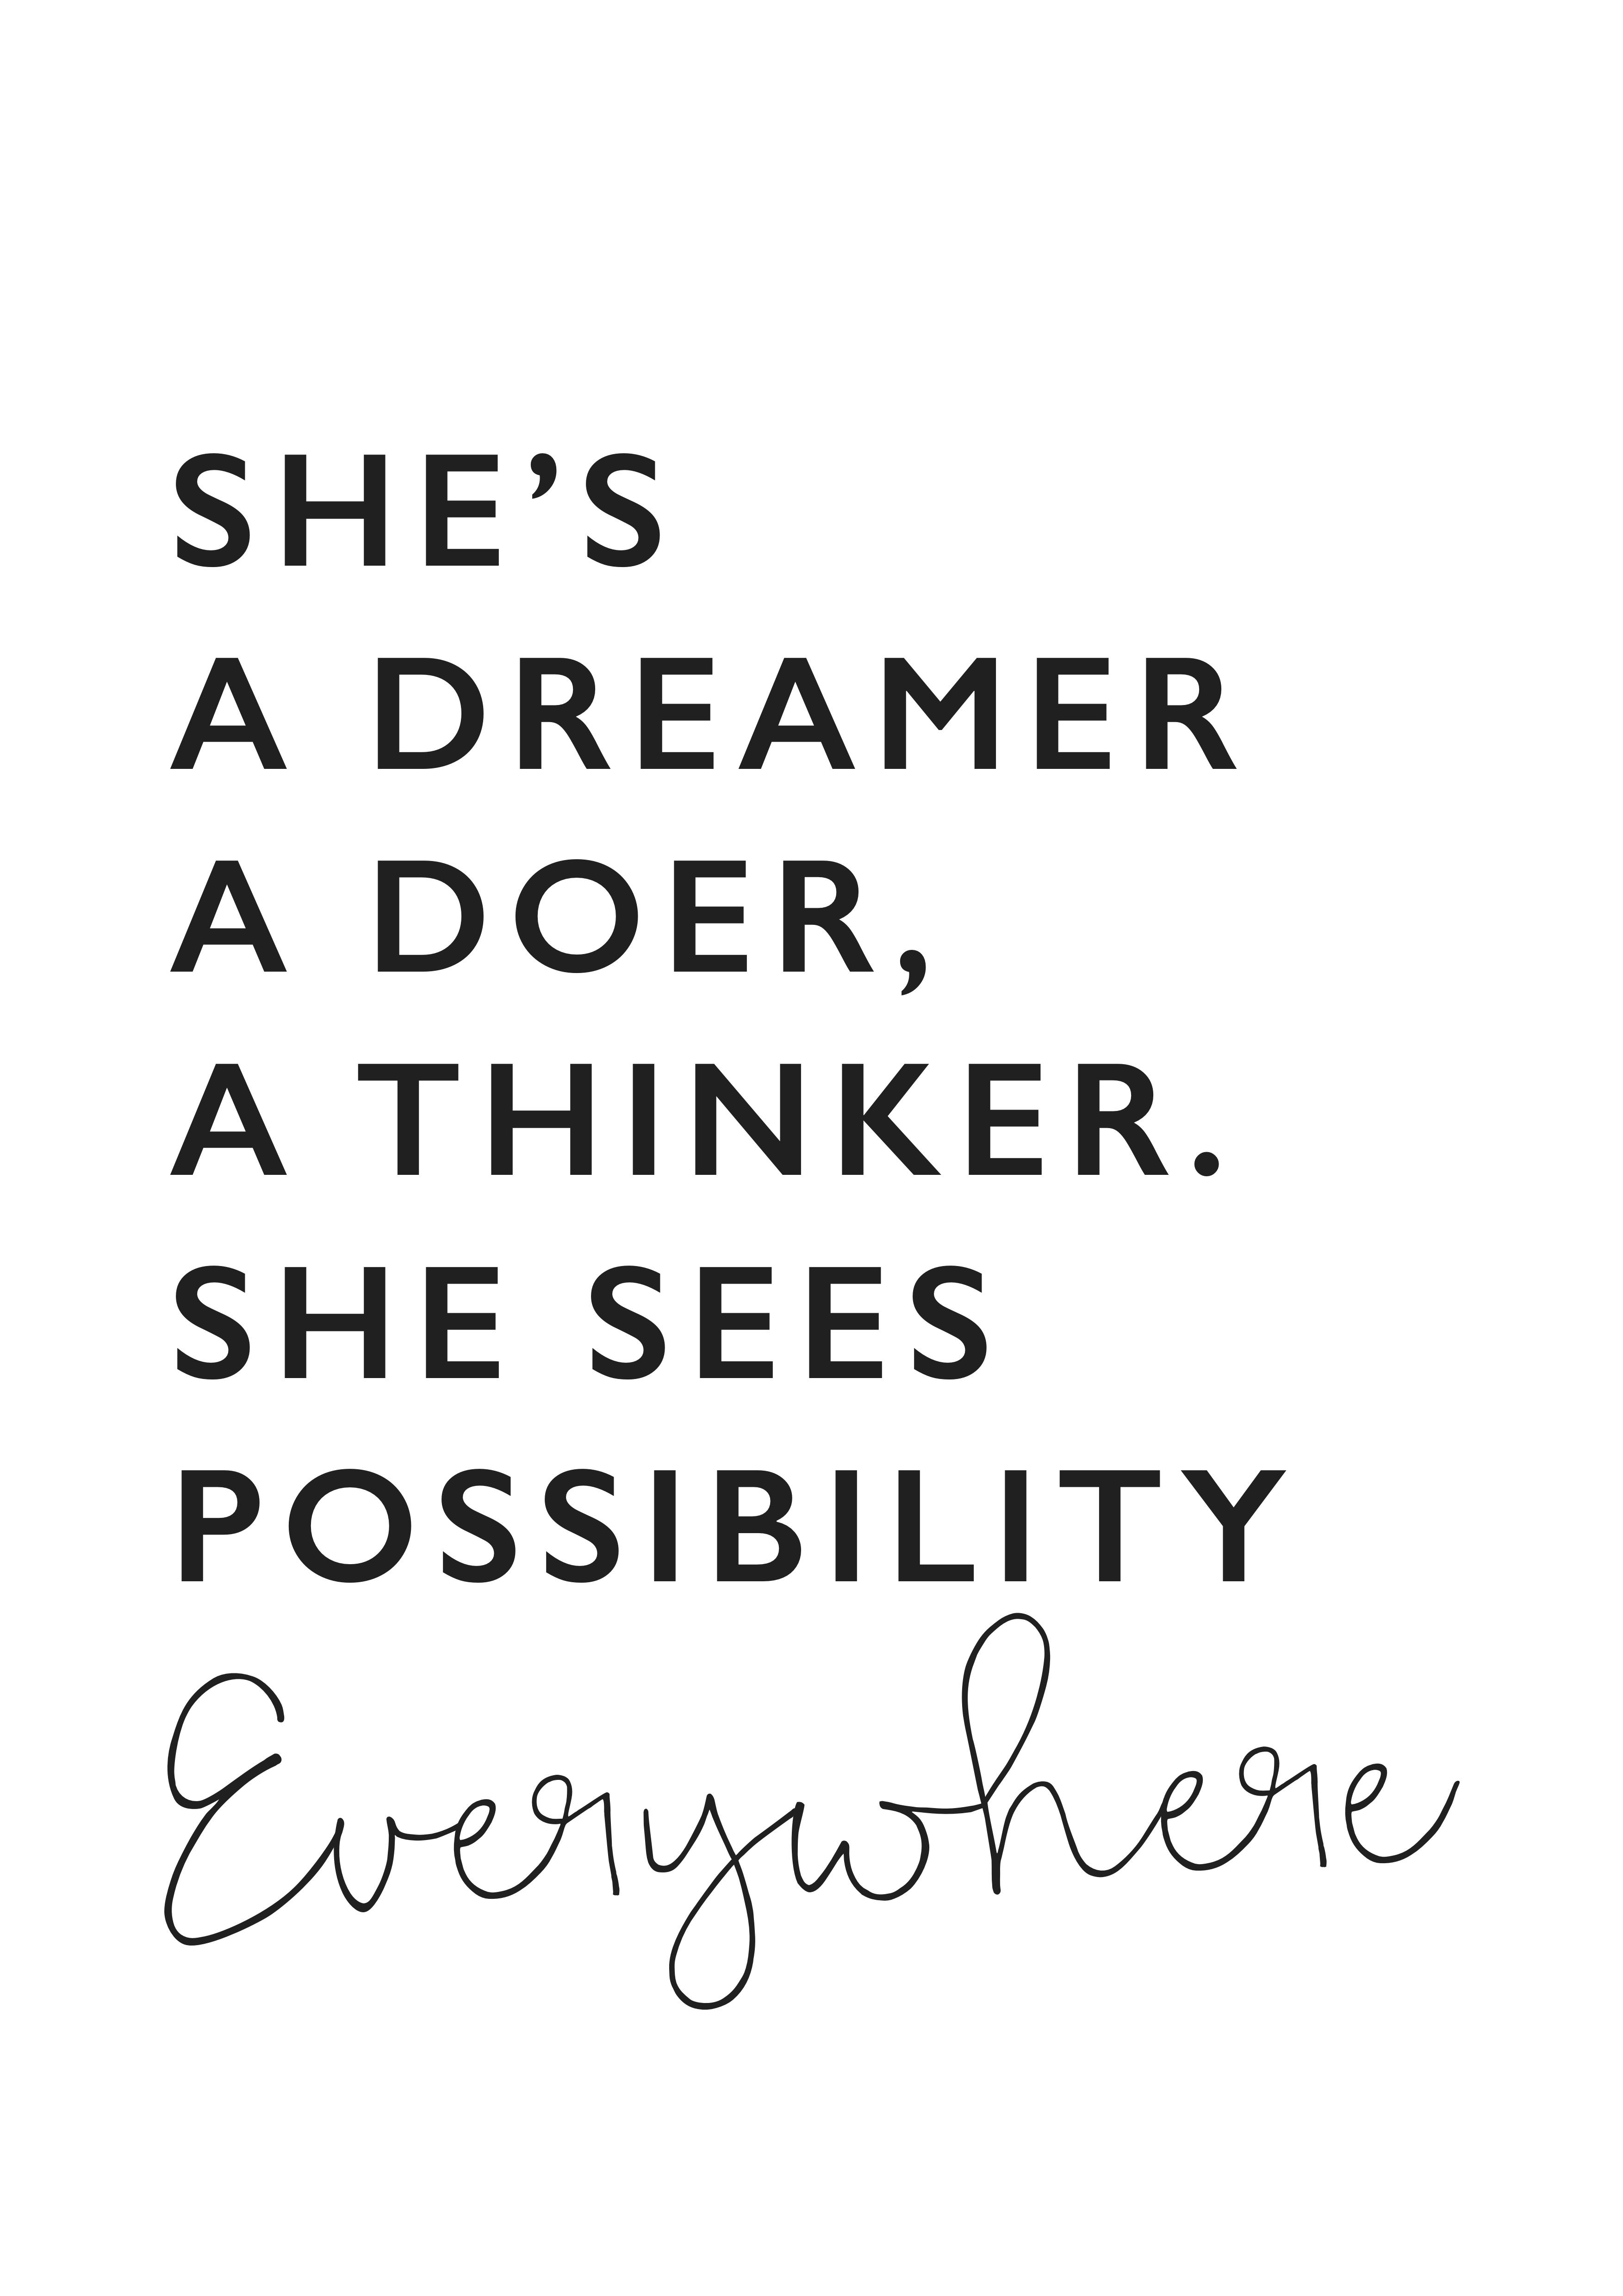 Shes A Dreamer A Doer A Thinker She Sees Possibility Everywhere